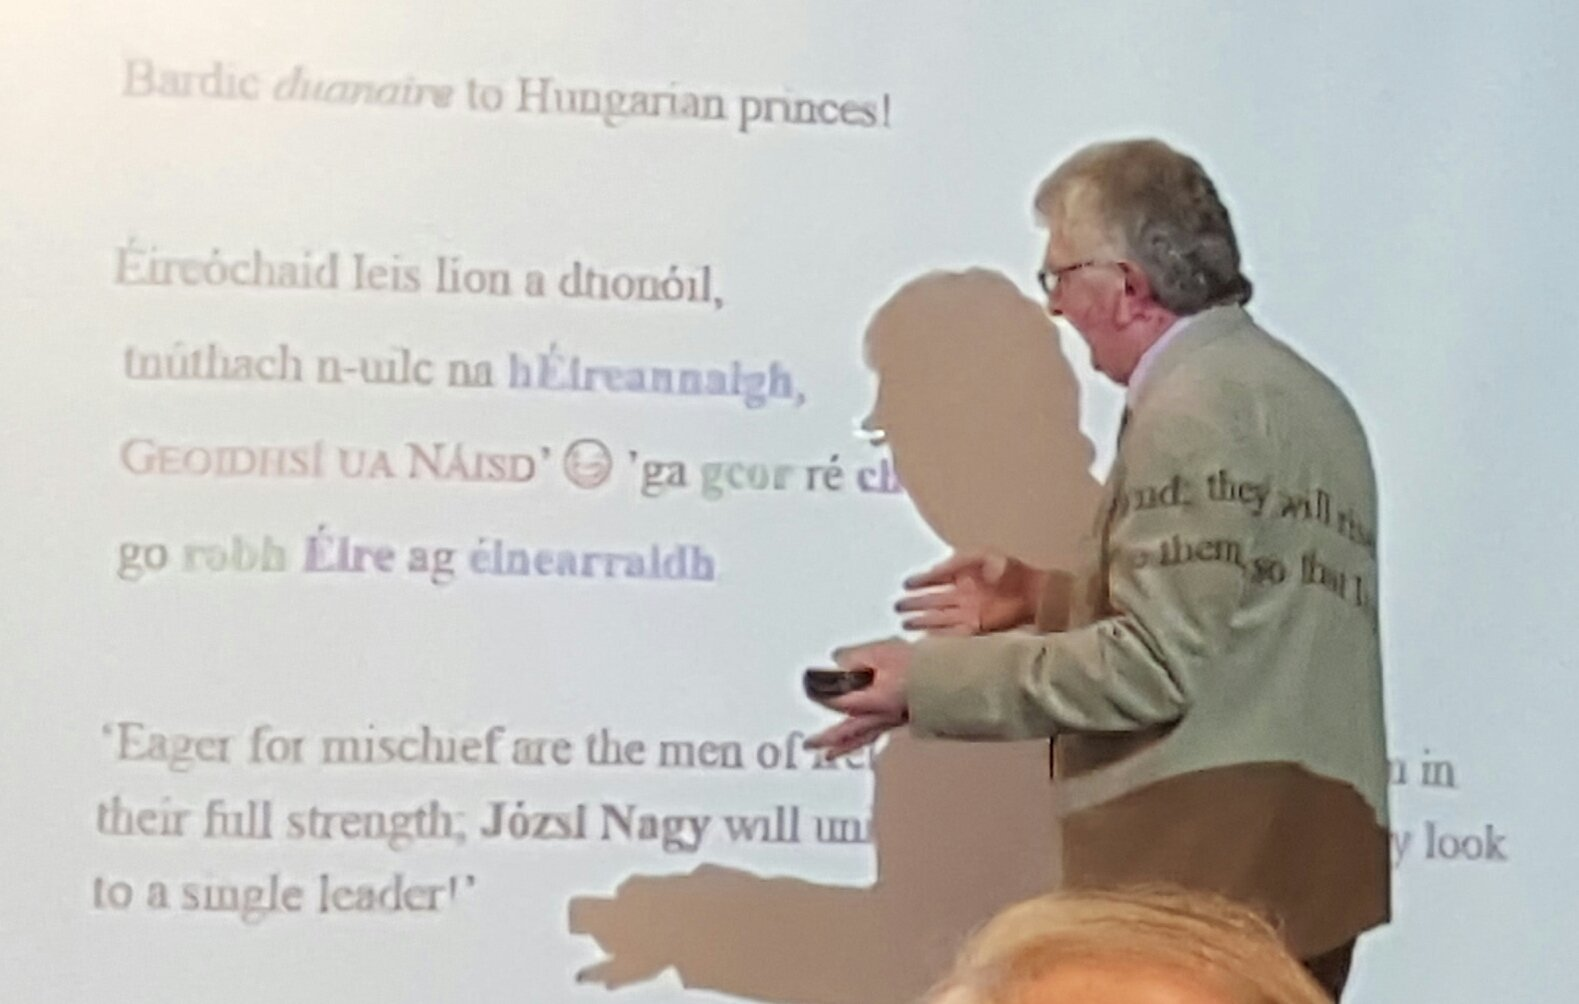 #SCSTionol2016 Damian McManus finds a bardic poem on the Hungarian nobleman Józsi Nagy (Harvard), the name standing in urlann (butt of line) https://t.co/90nVzk499z